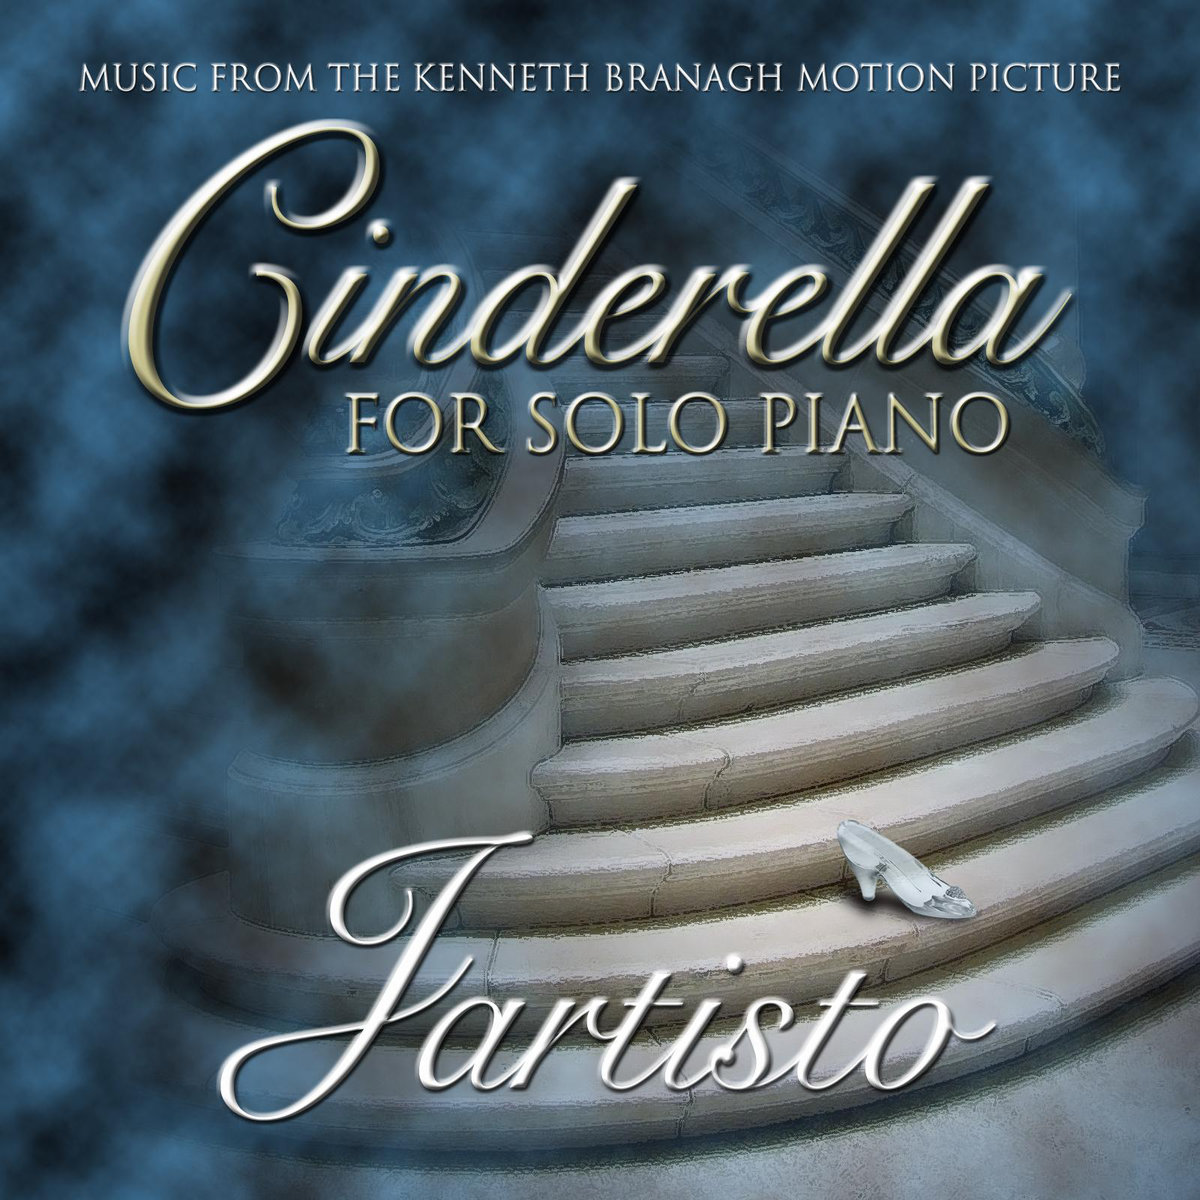 Cinderella: Music From The Motion Picture For Solo Piano